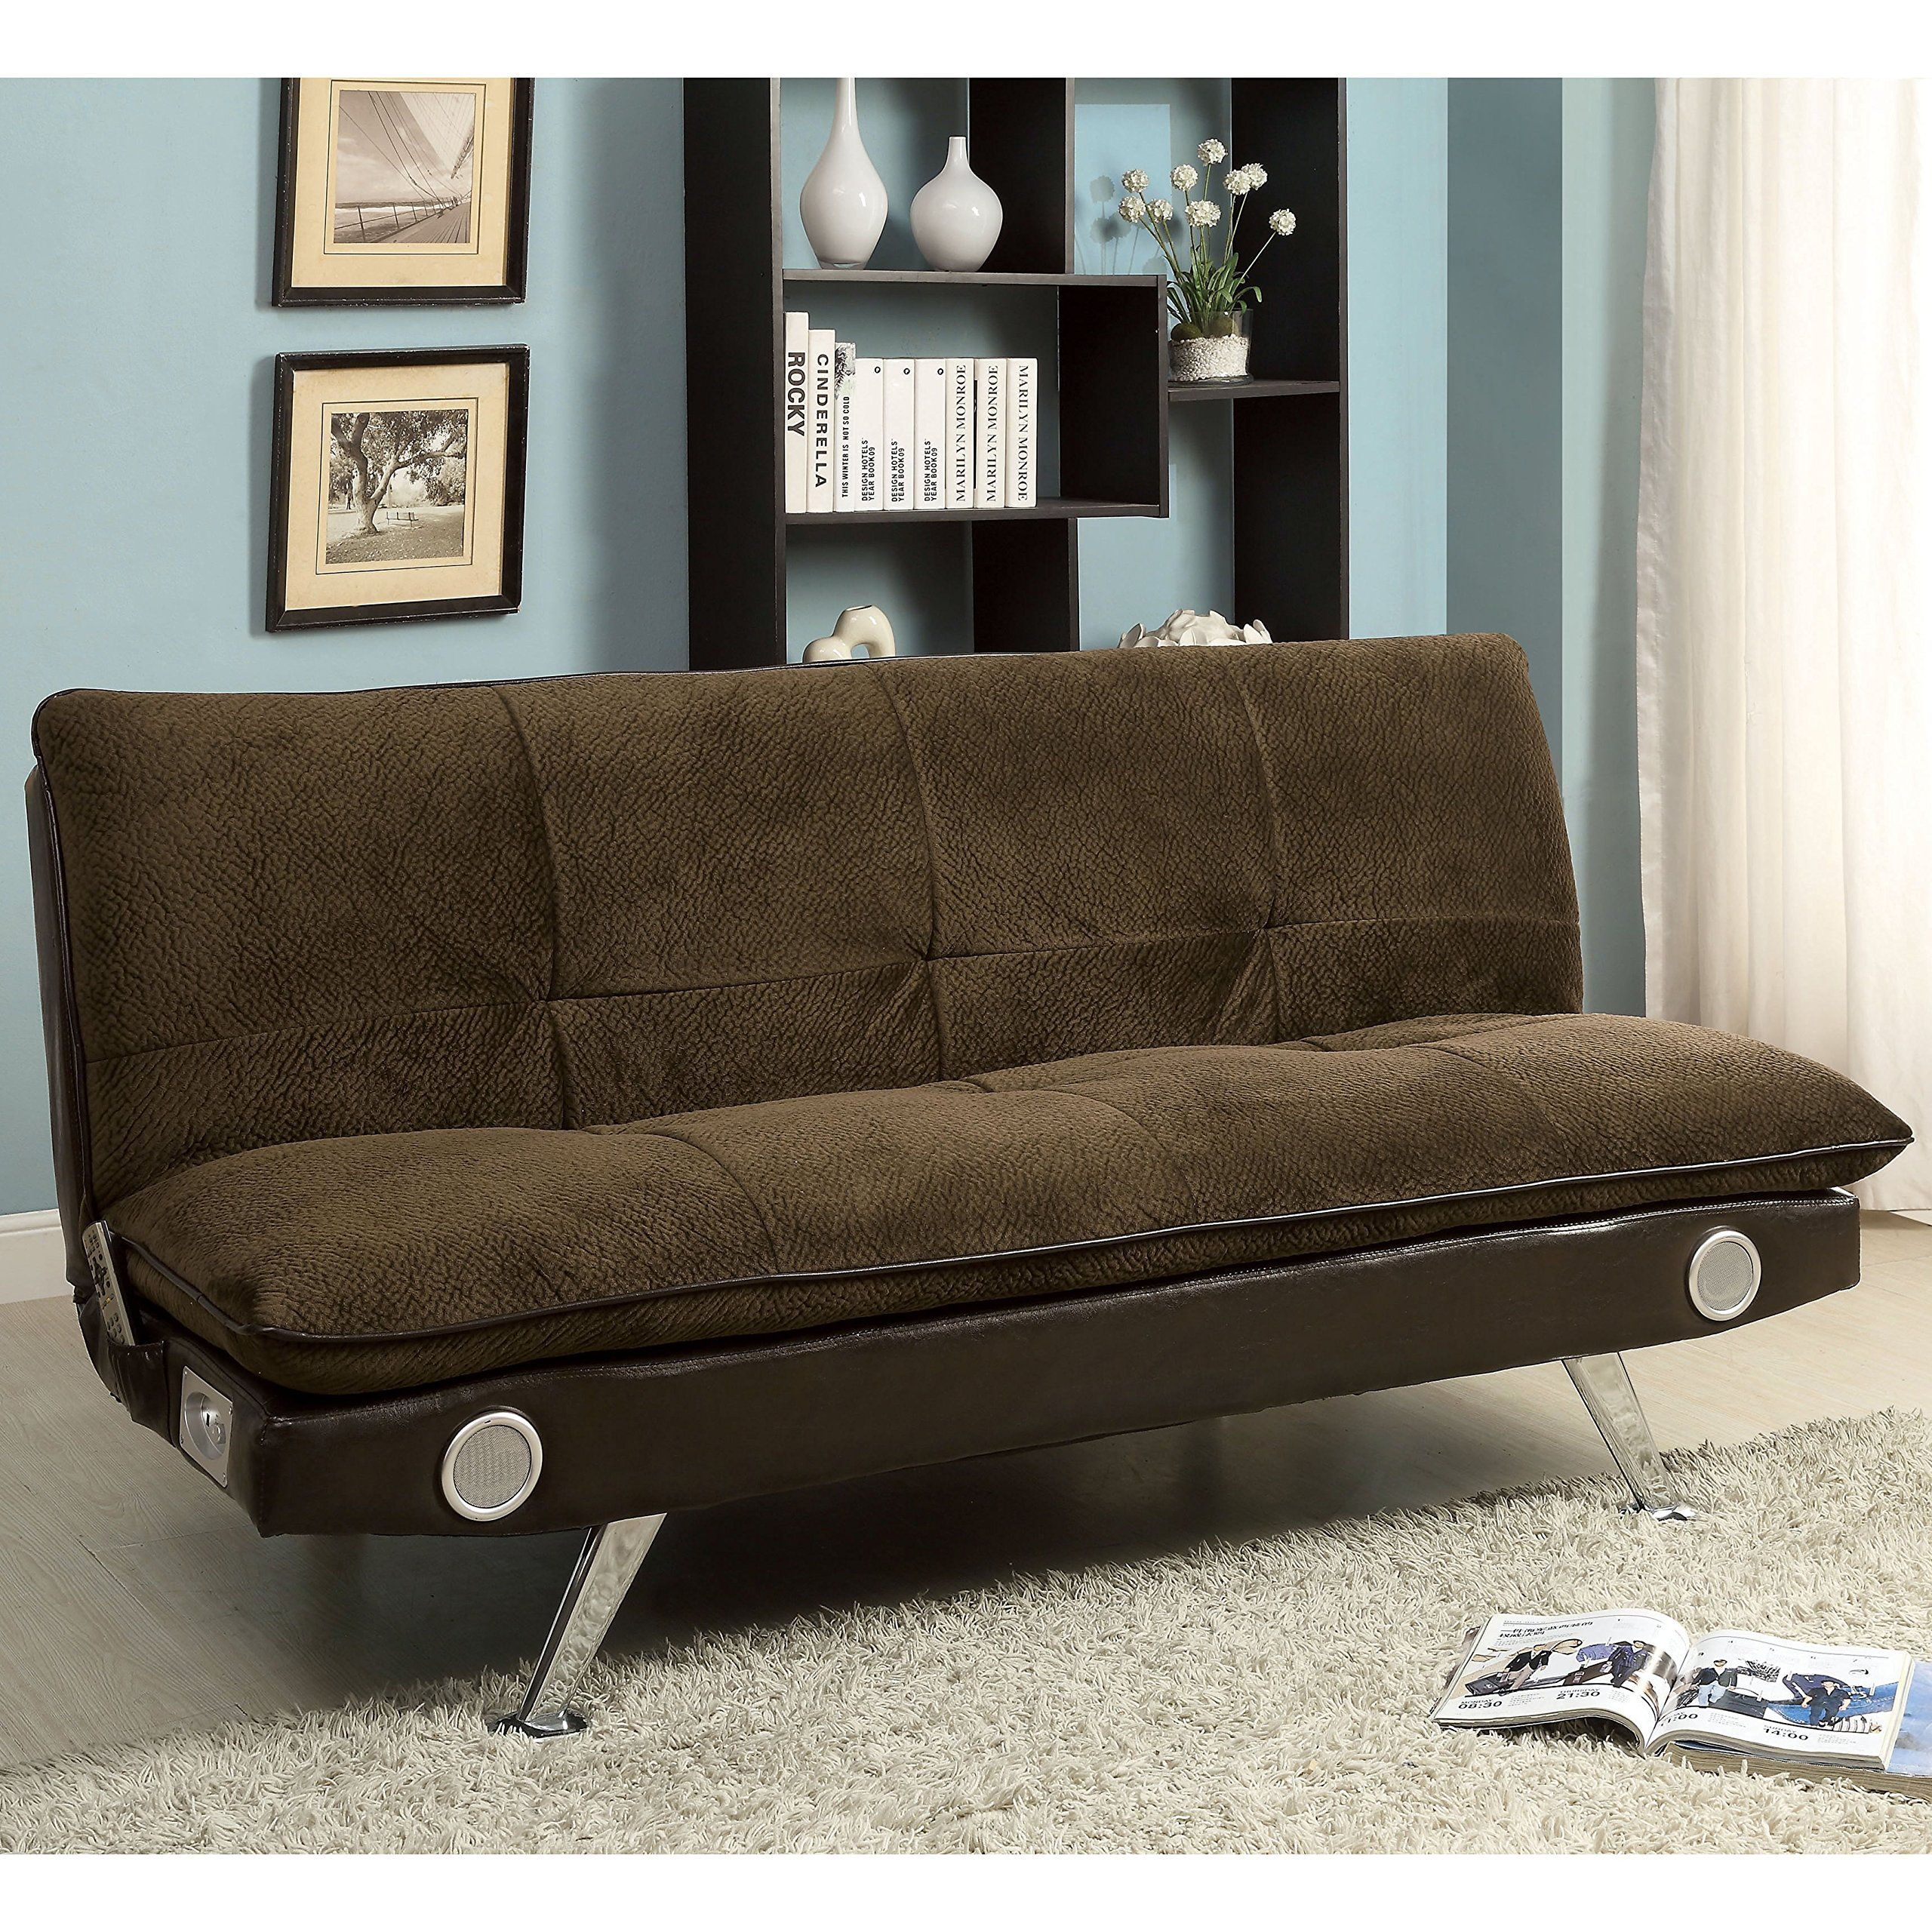 furniture of america thrain modern 2tone futon sofa with bluetooth